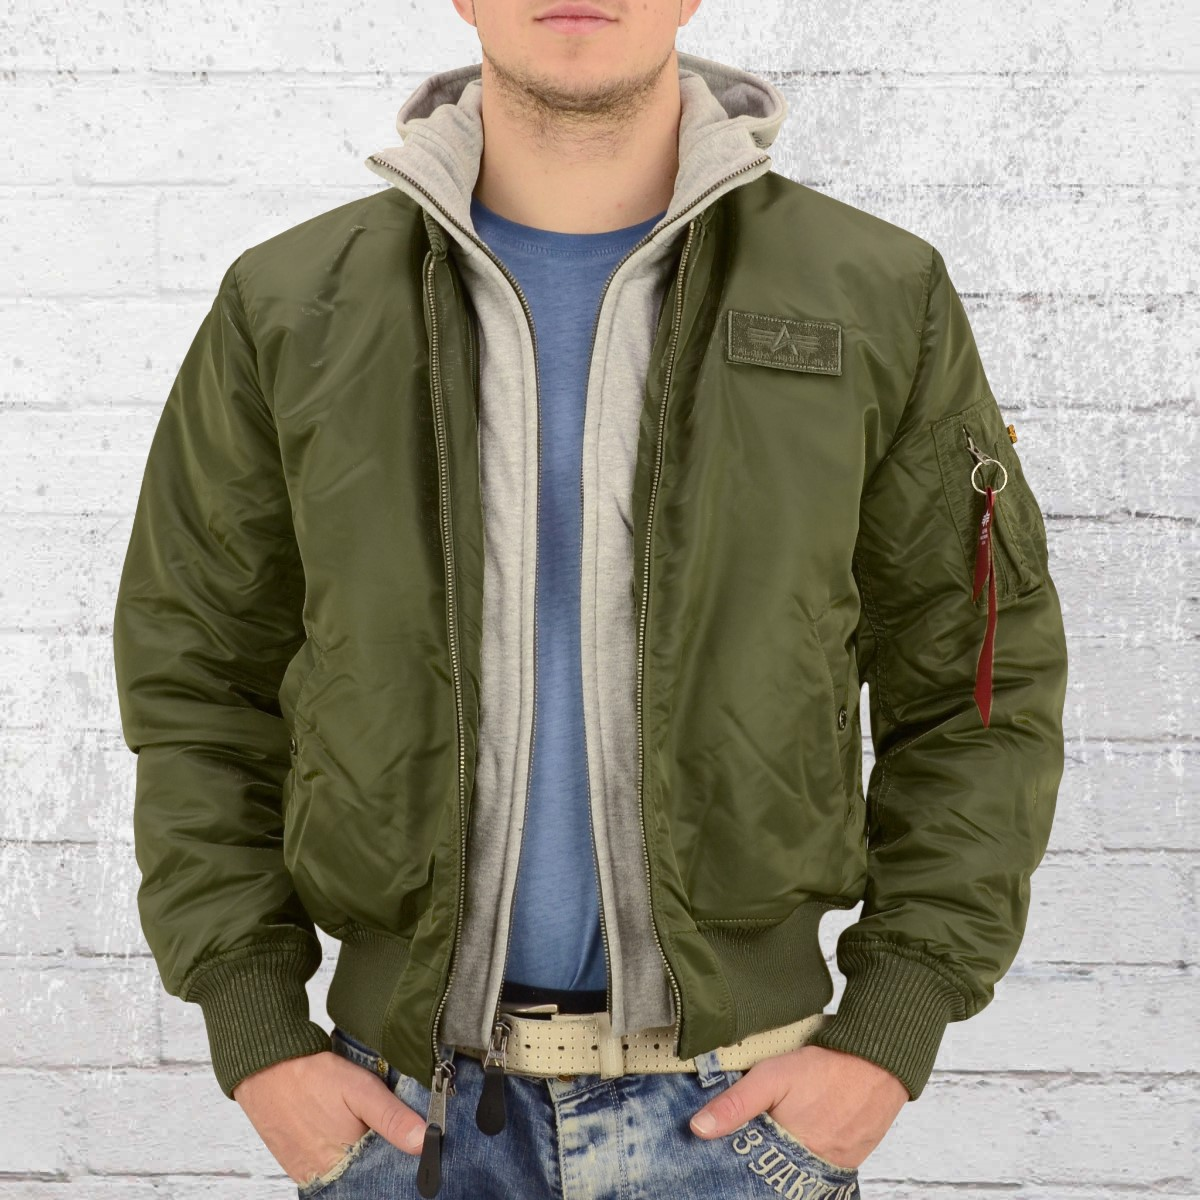 Alpha Industries Male Bomber Jacket MA1 D Tec dark green. ›‹ « 5382edb0384